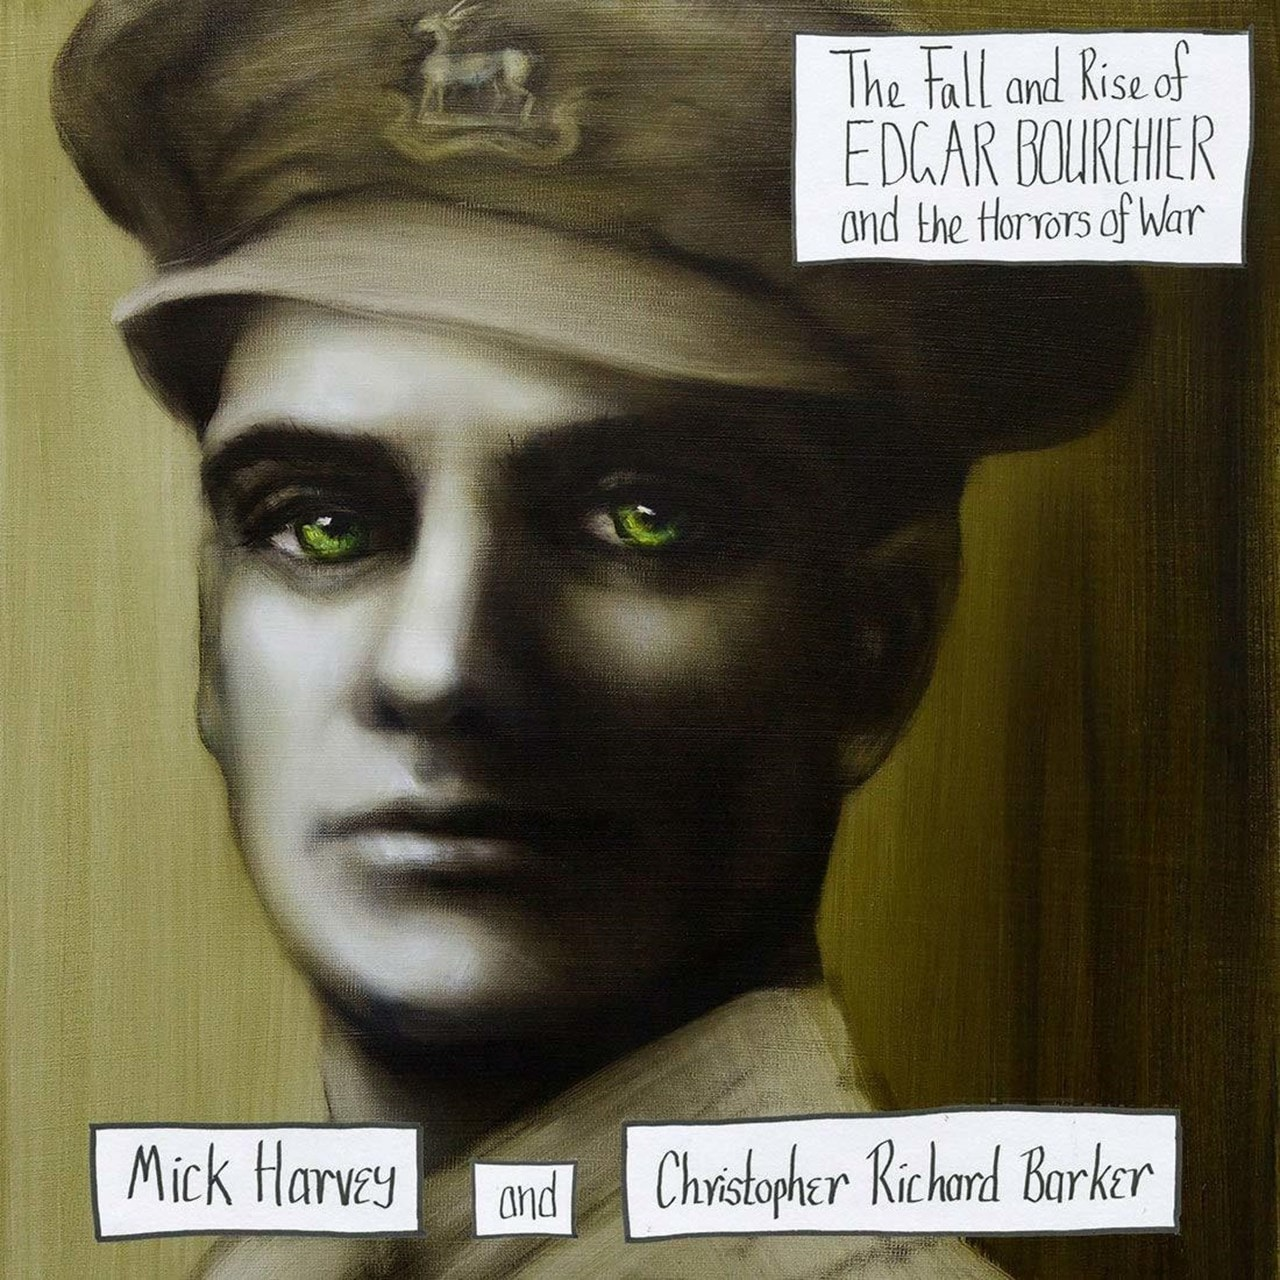 The Fall and Rise of Edgar Bourchier and the Horrors of War - 1